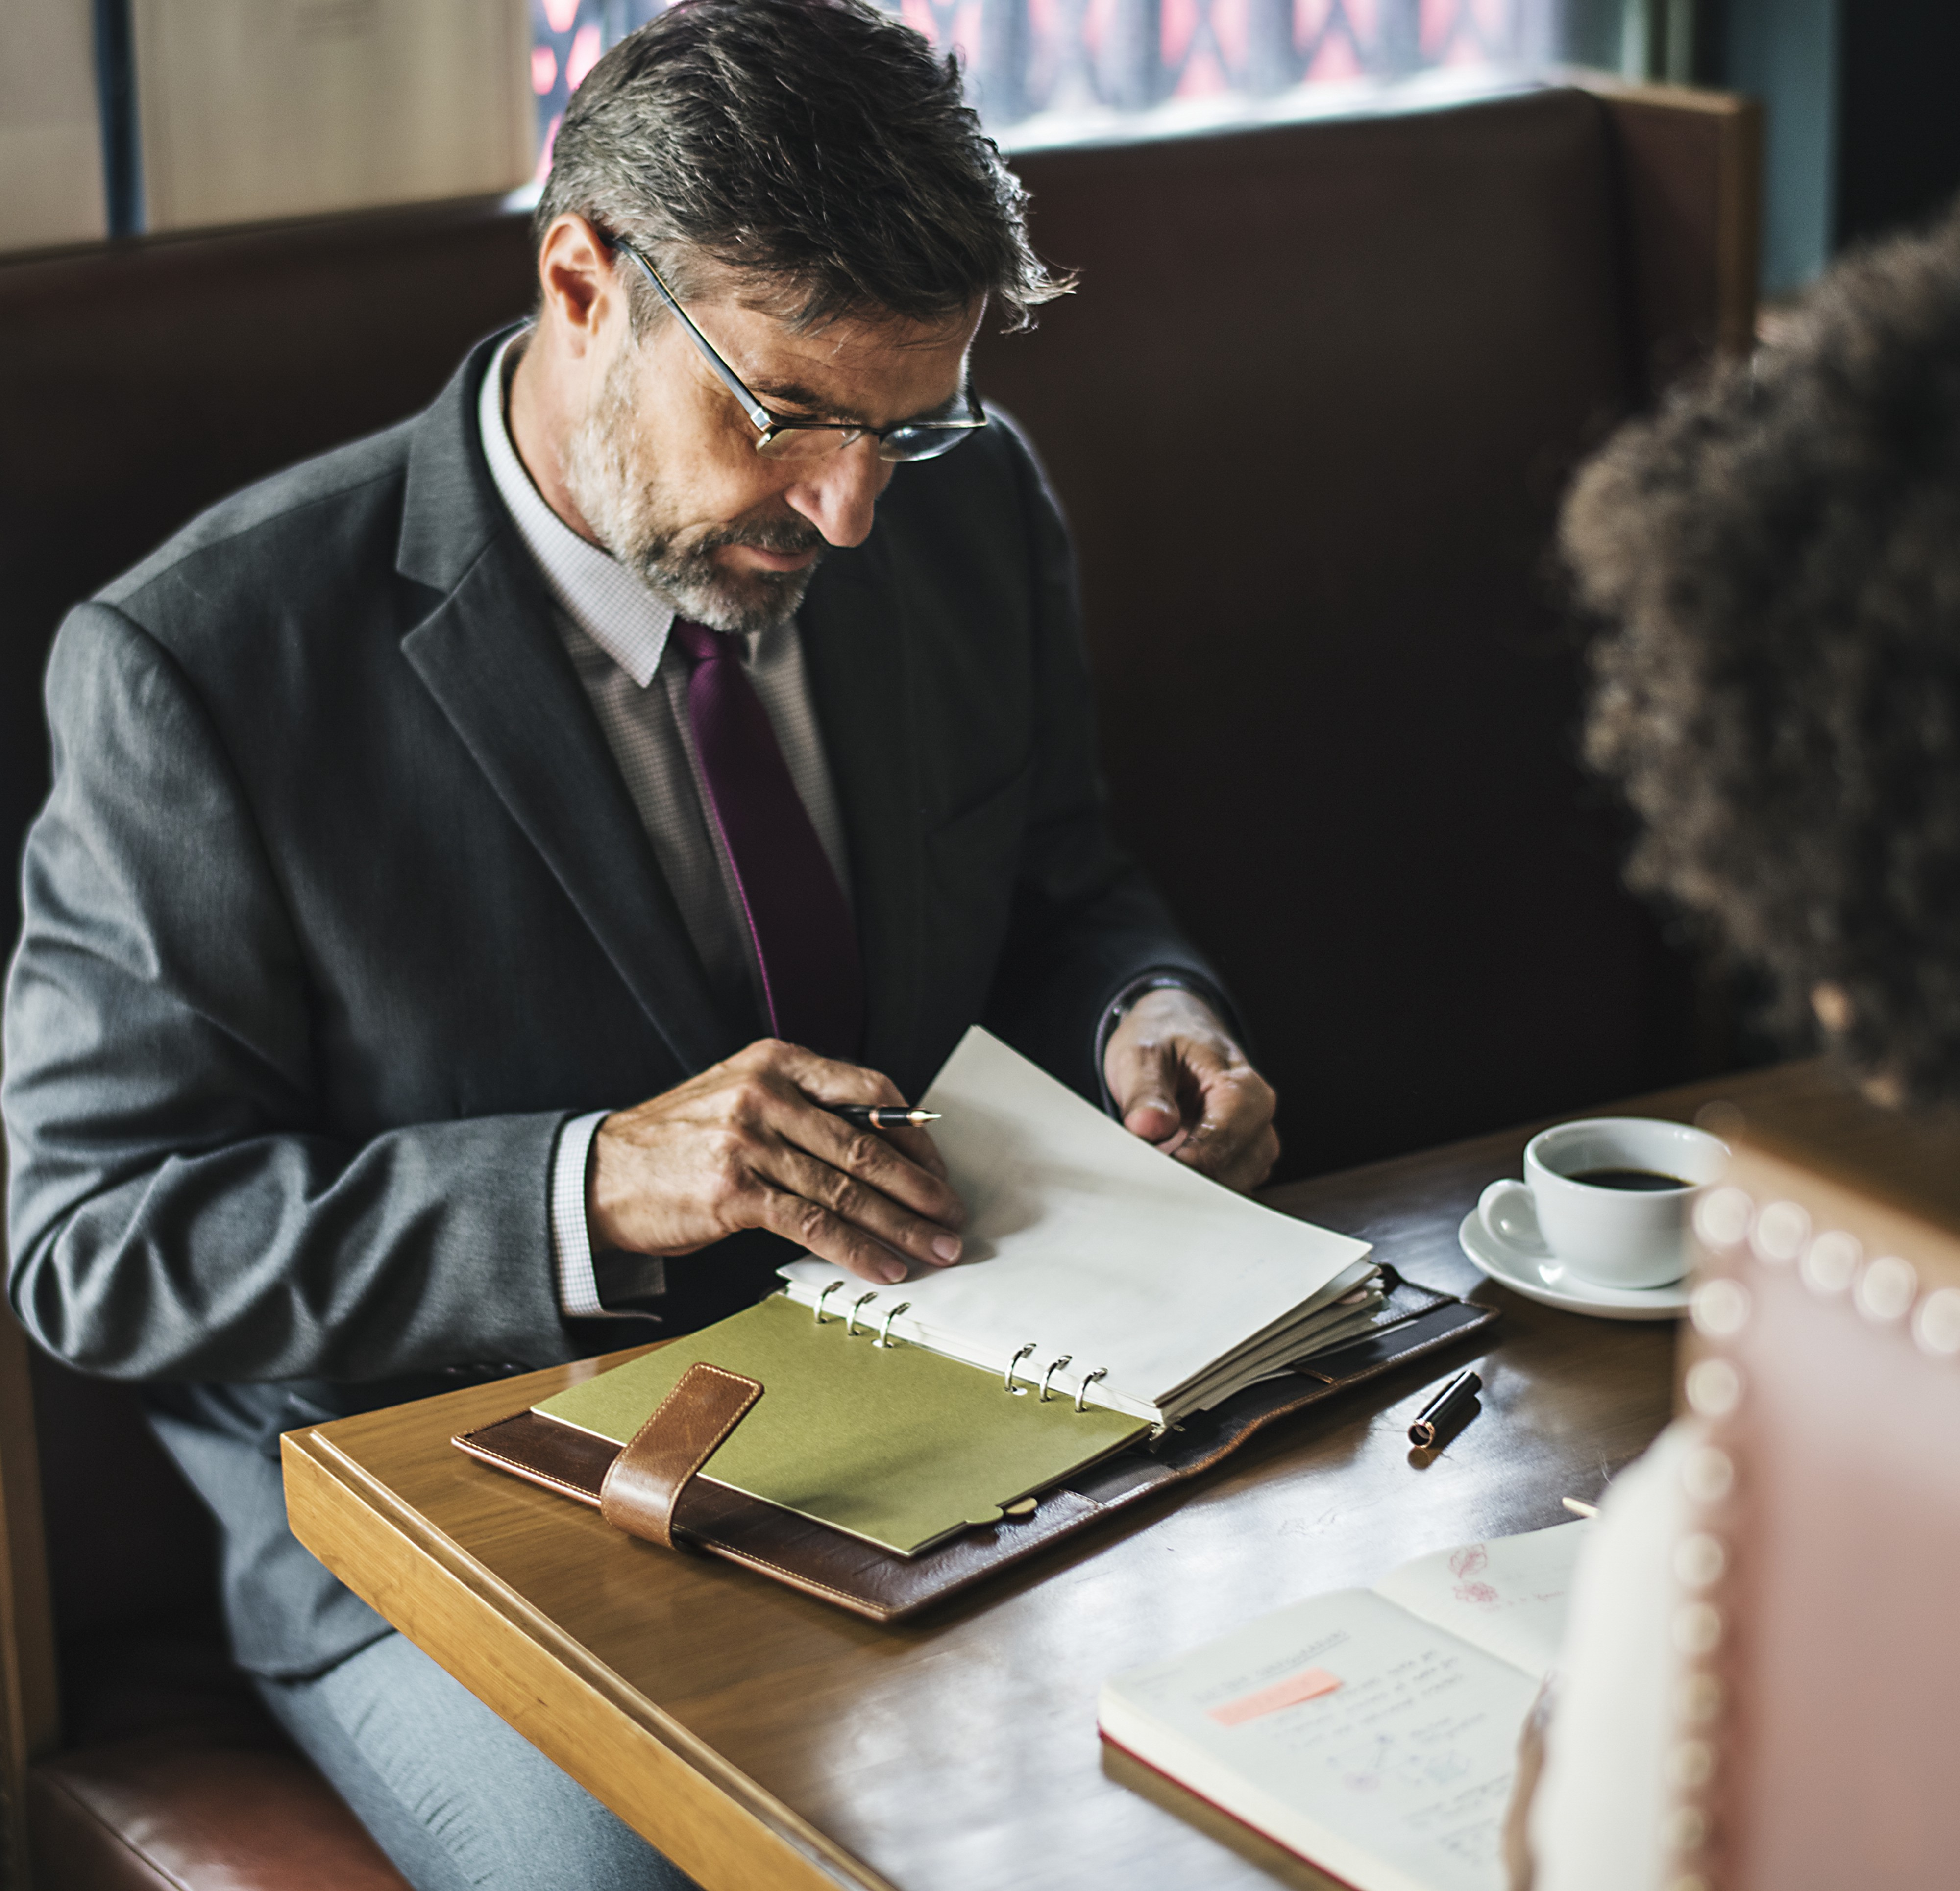 A man looking at paperwork, sitting across the table from a woman